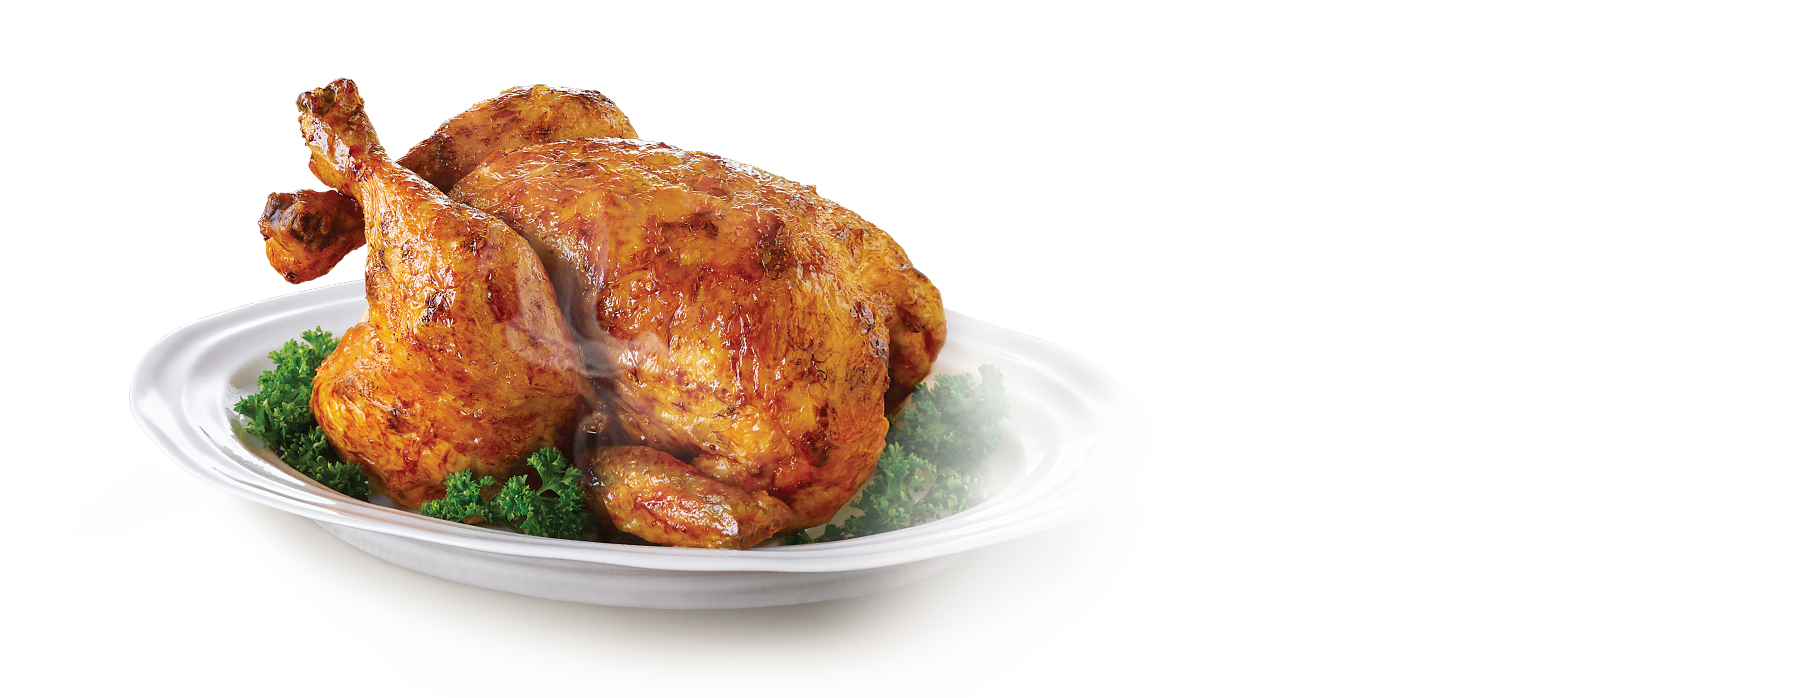 Chicken clipart chicken dish. Fried png picture web